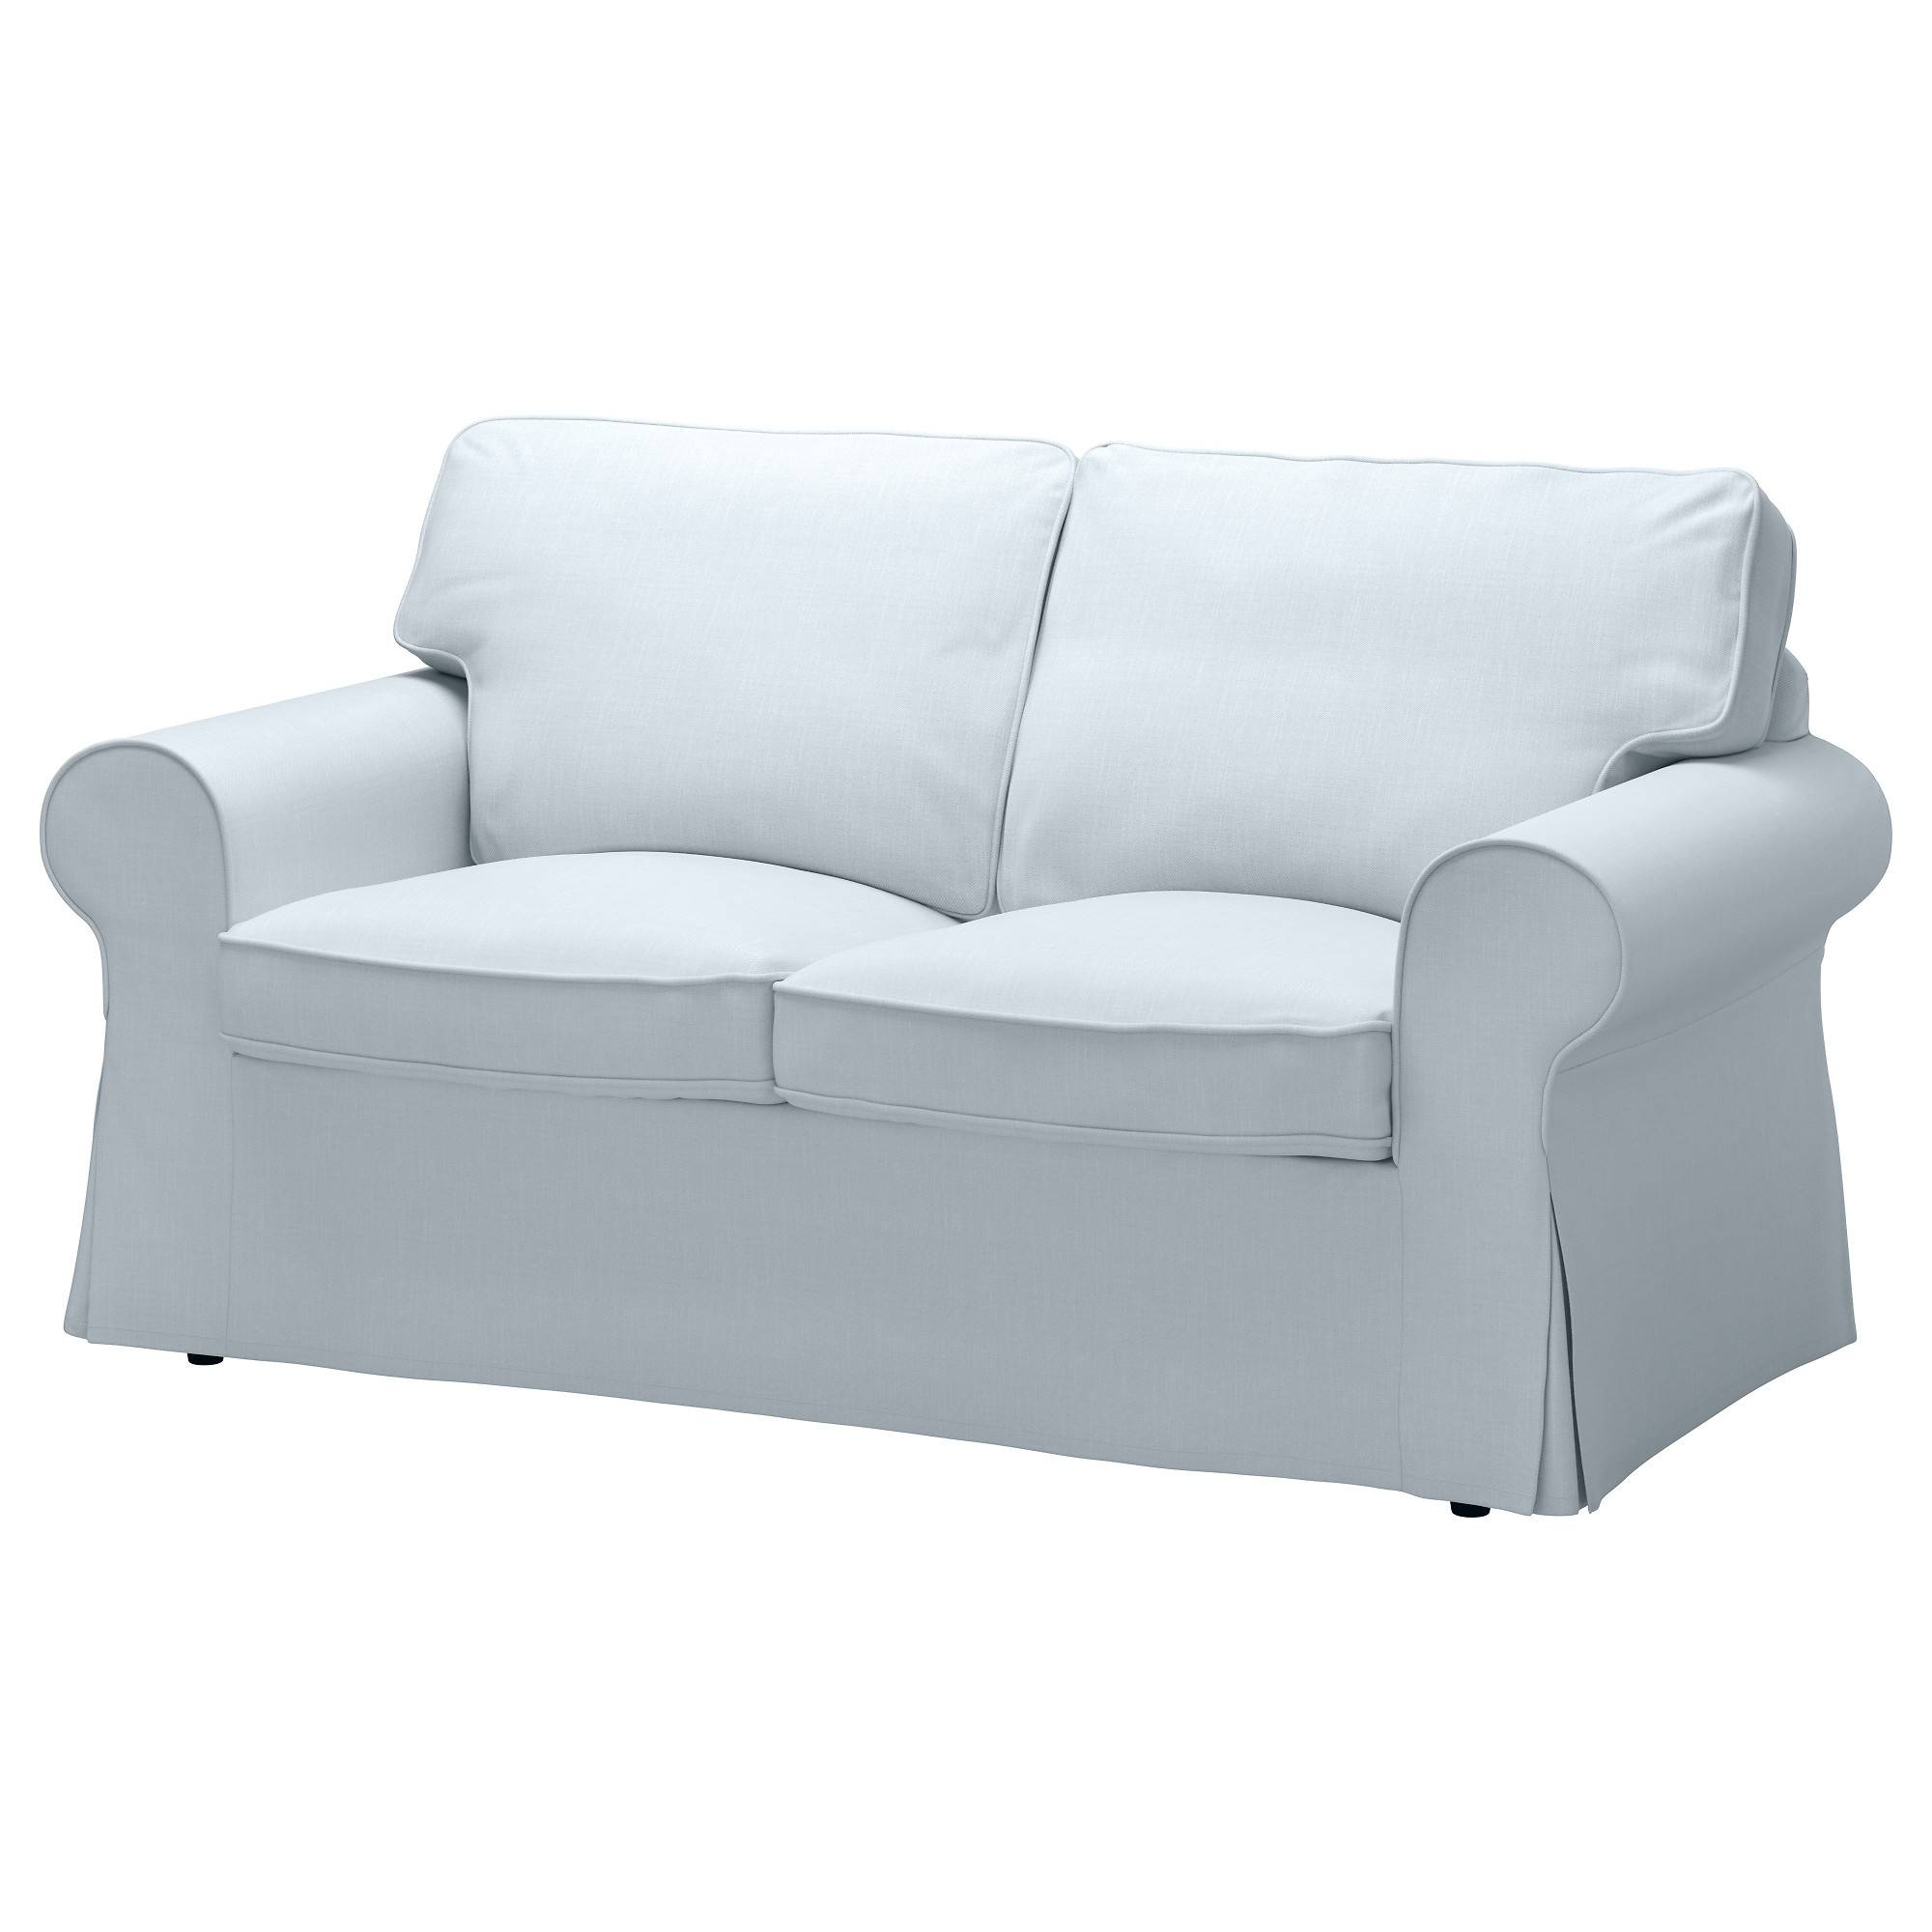 Ektorp Loveseat Cover - Nordvalla Dark Beige - Ikea with Sofa And Loveseat Covers (Image 1 of 15)